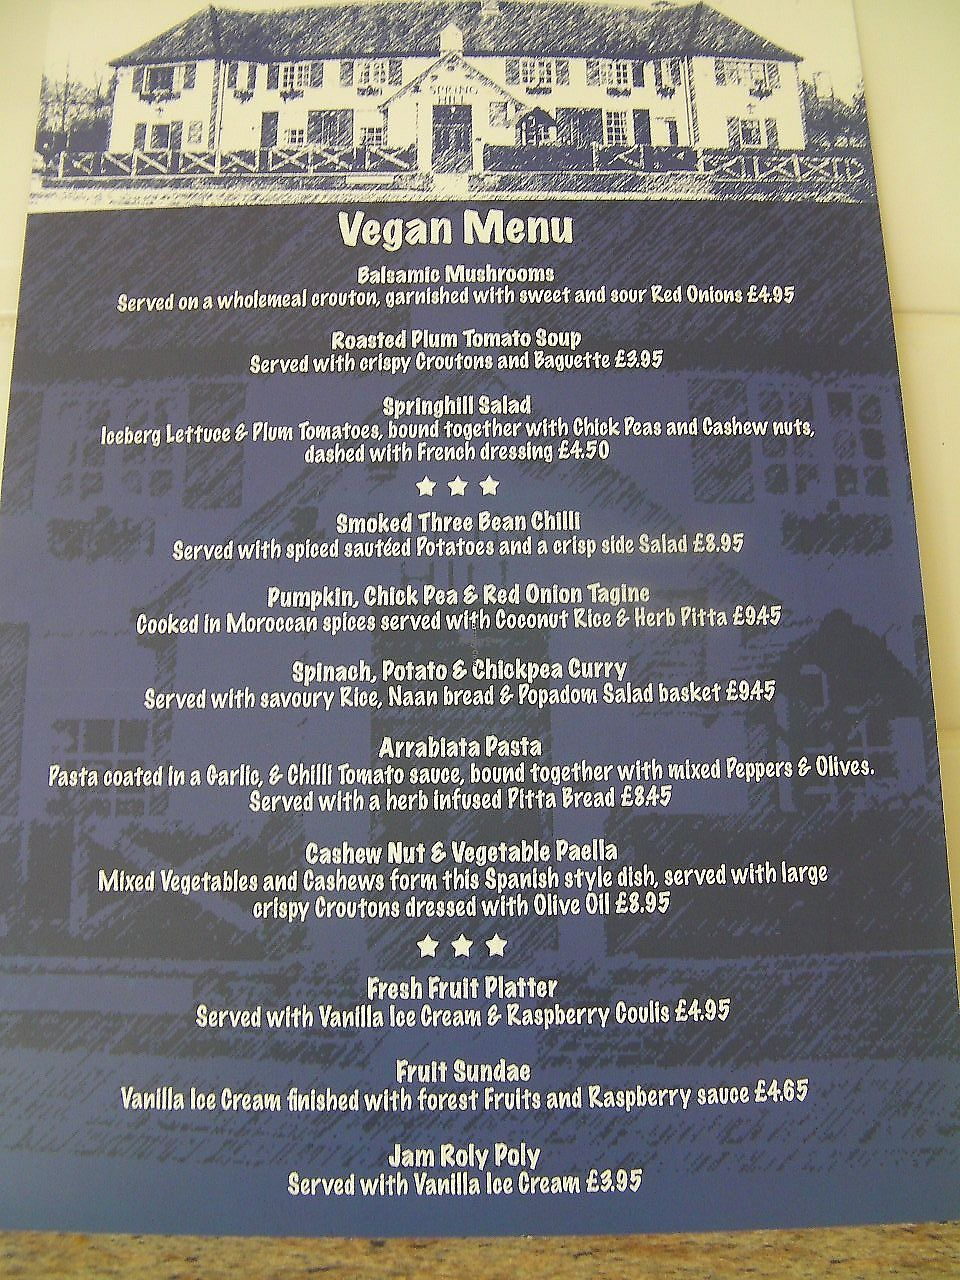 """Photo of The Springhill  by <a href=""""/members/profile/Veganmale"""">Veganmale</a> <br/>Vegan Menu at the Springhill  <br/> July 17, 2017  - <a href='/contact/abuse/image/21746/344528'>Report</a>"""